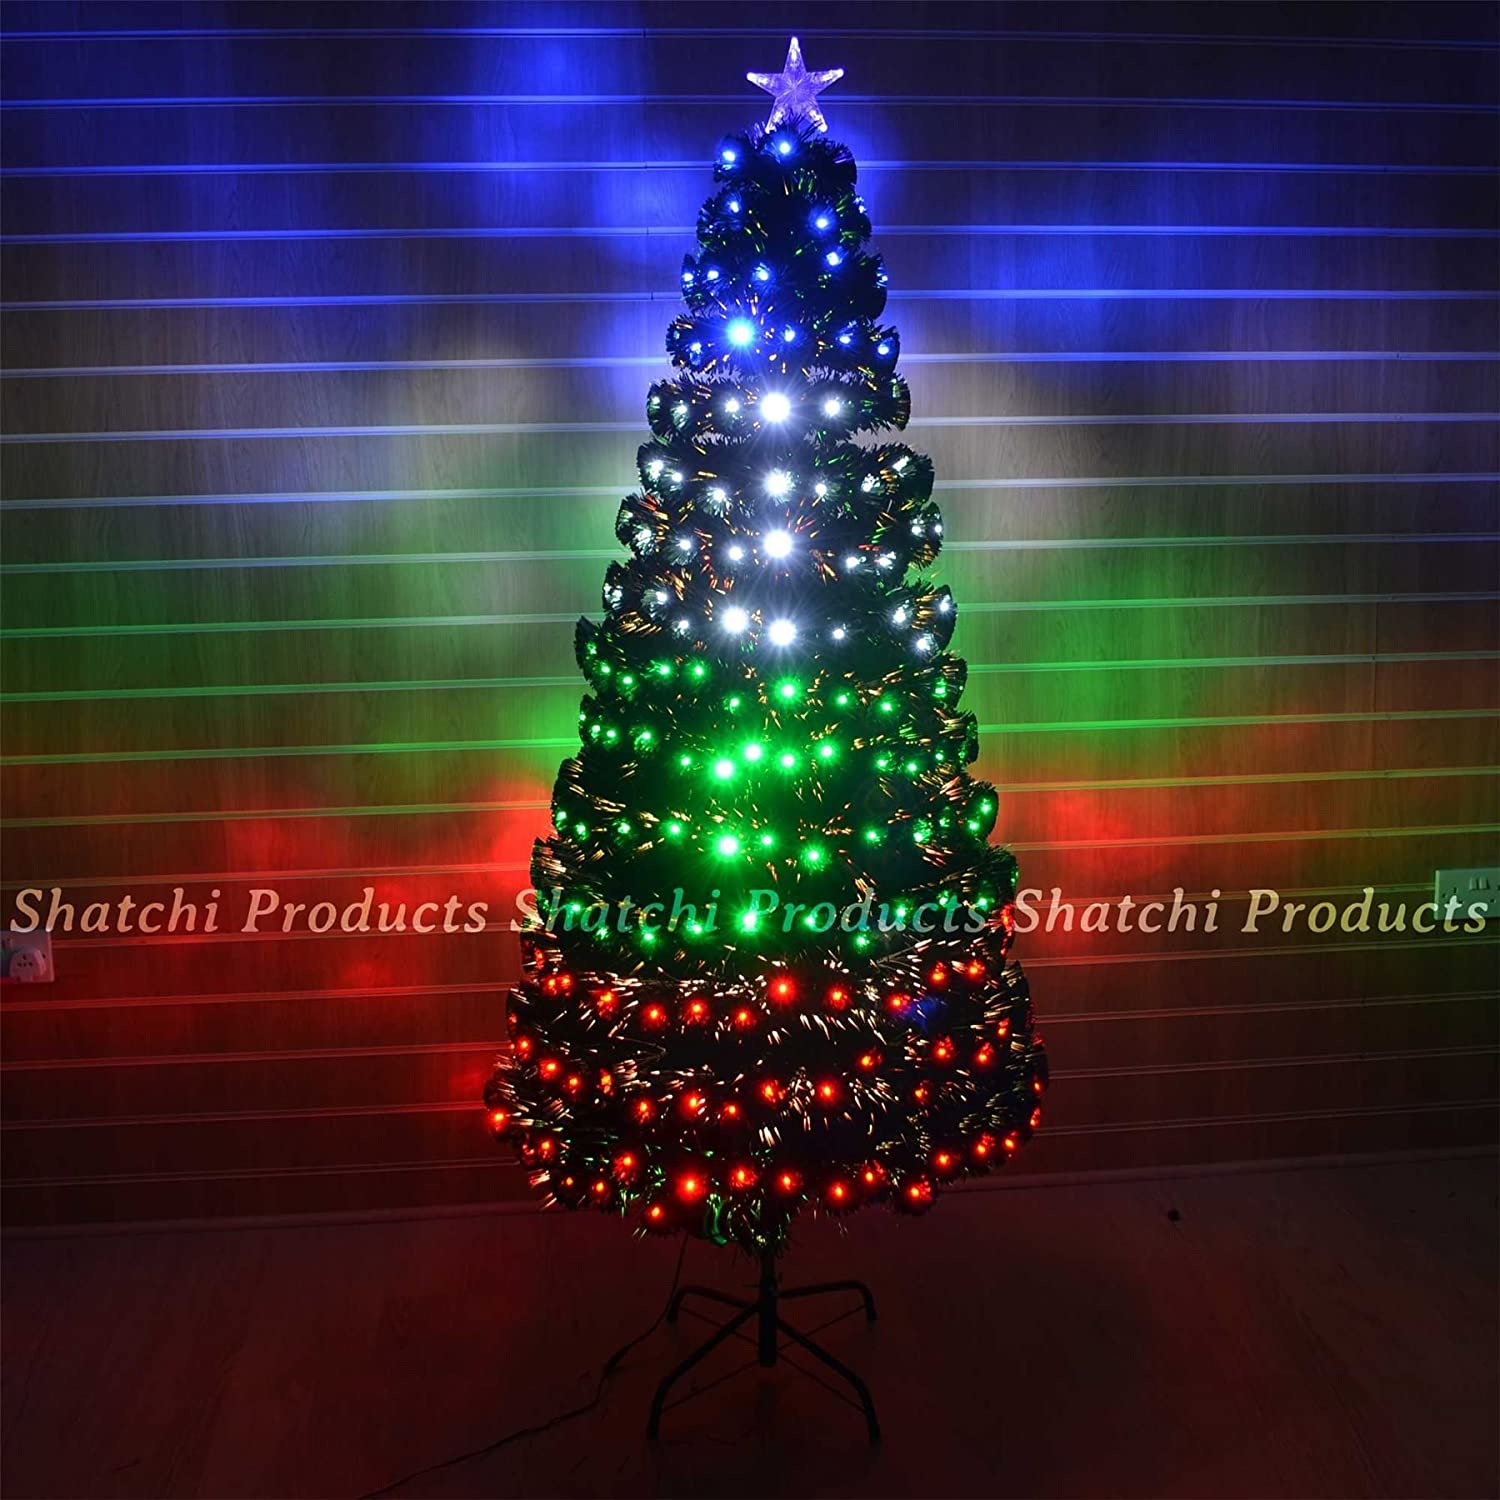 5ft 150cm LED Fibre Optic Christmas Tree Multi Colour Changing with Various Effects Xmas Decoration Shatchi Products